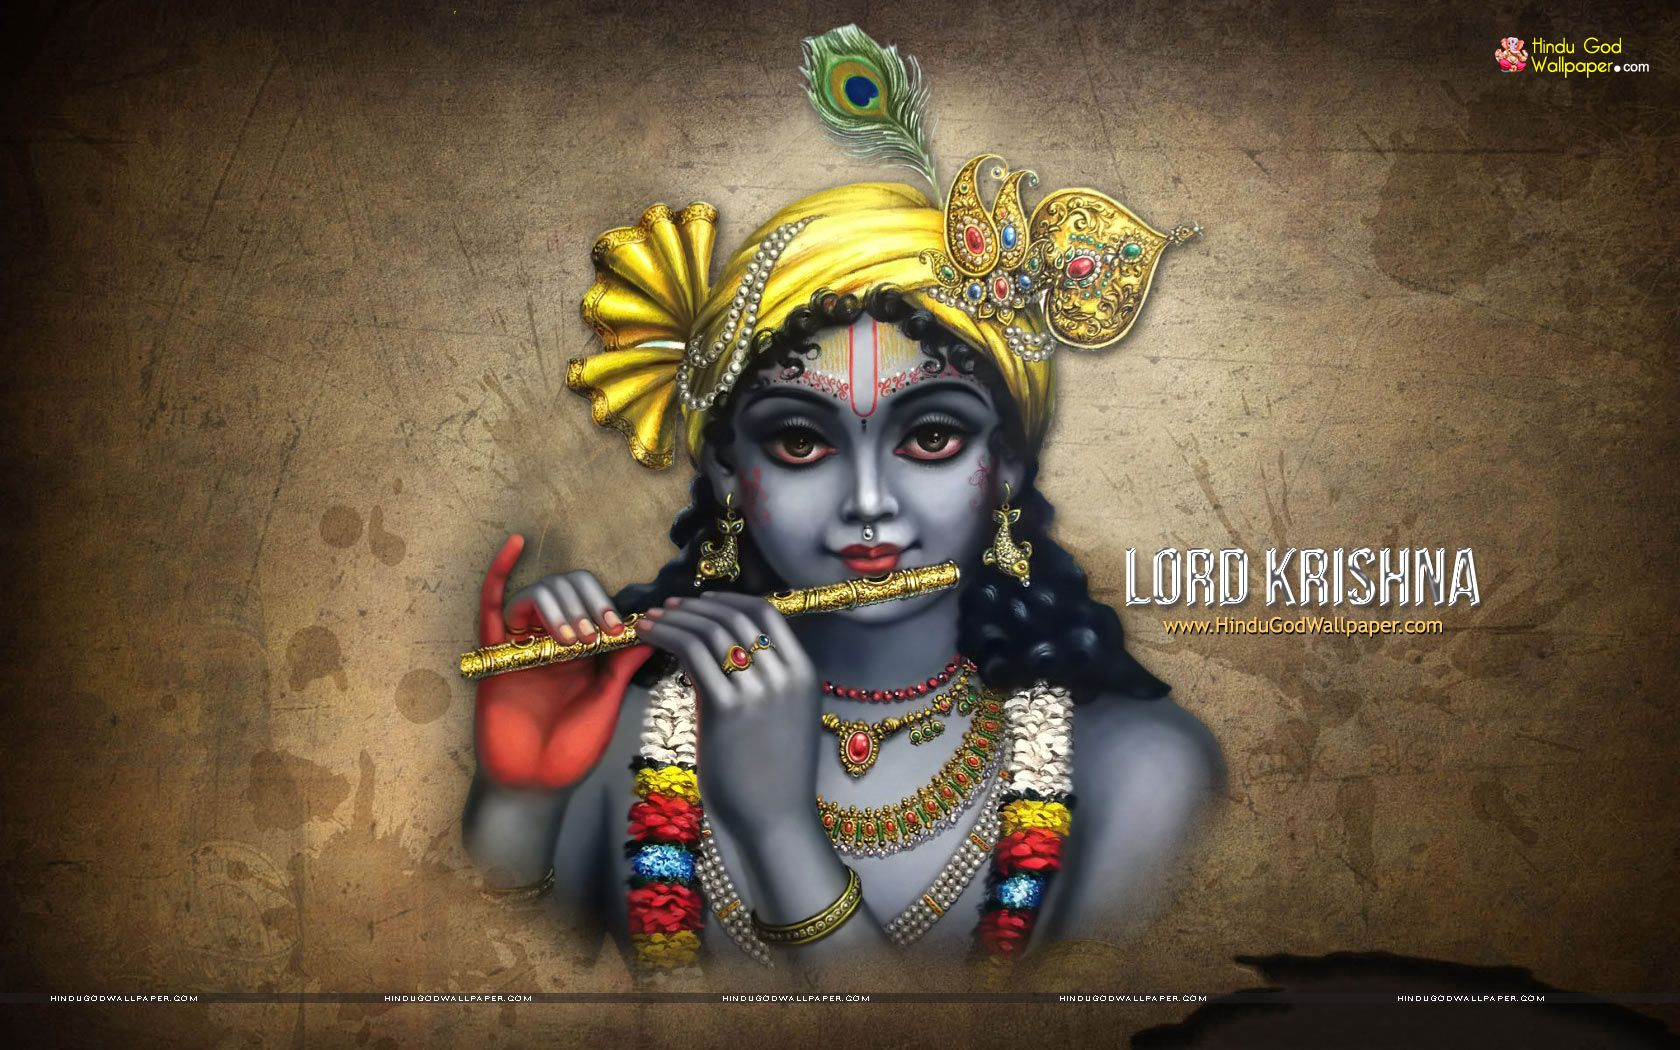 Radhe Krishna Wallpaper With Quotes 1680x1050 Shree Krishna Hd Wallpaper Free Download Харе